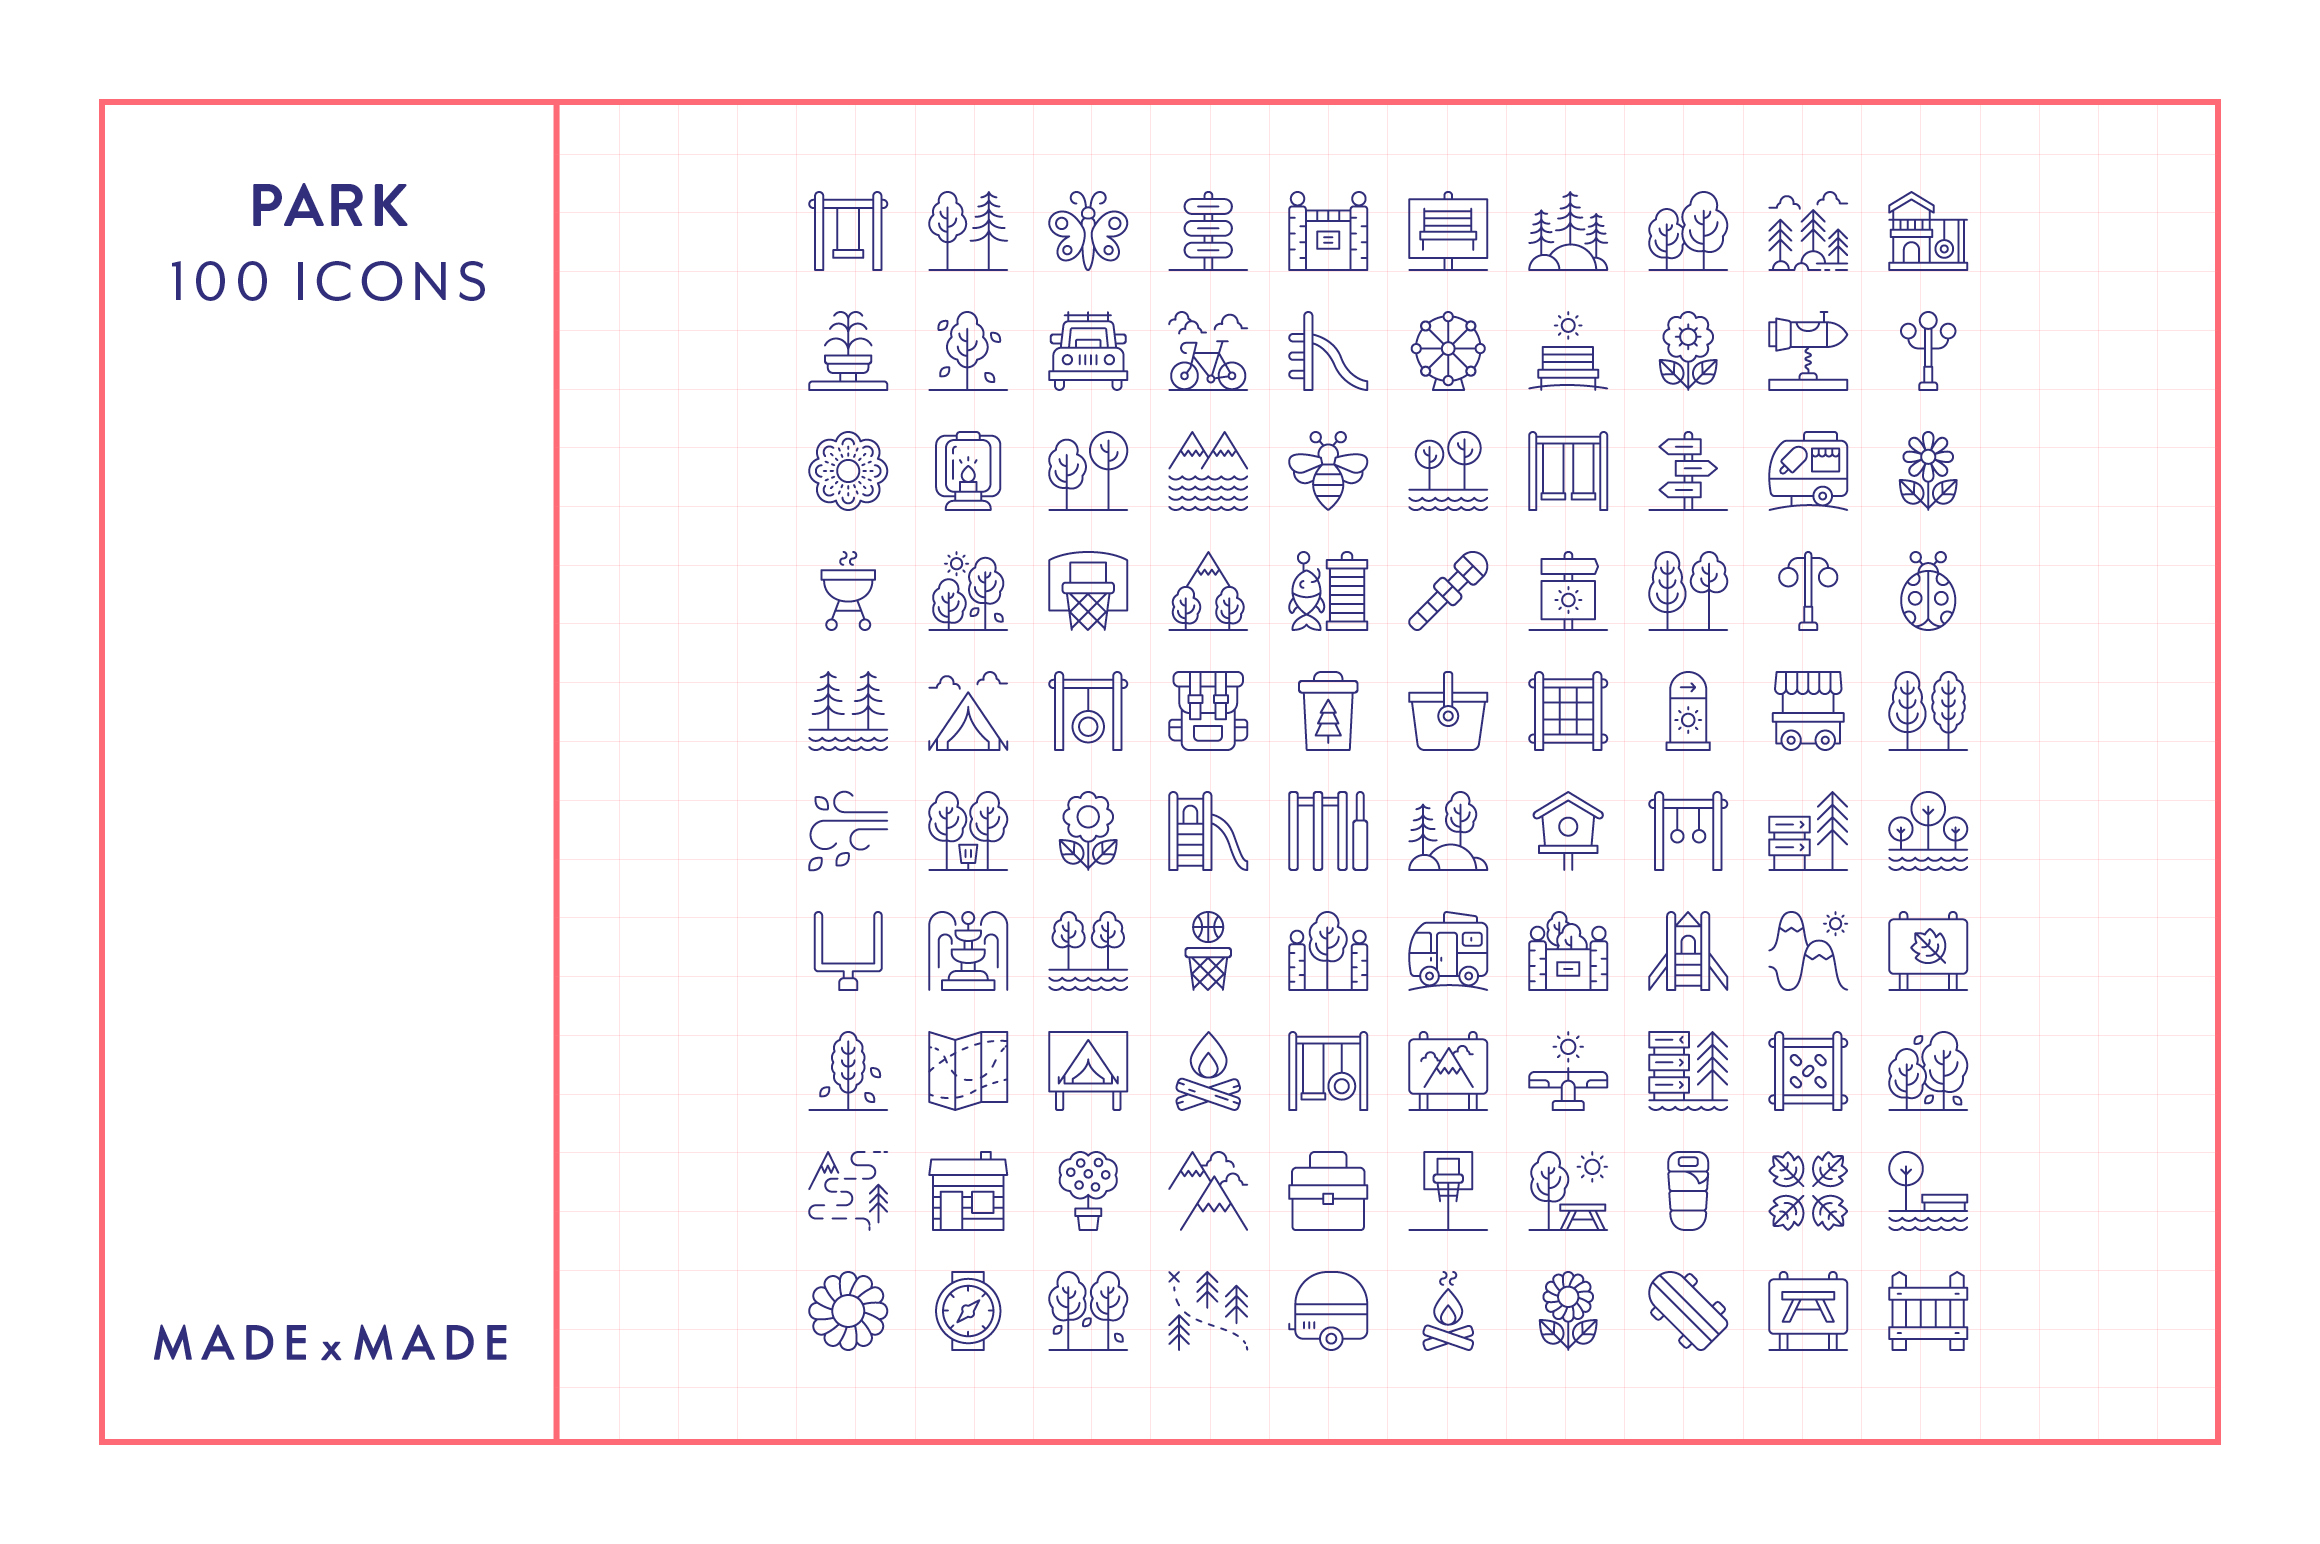 Park Icons